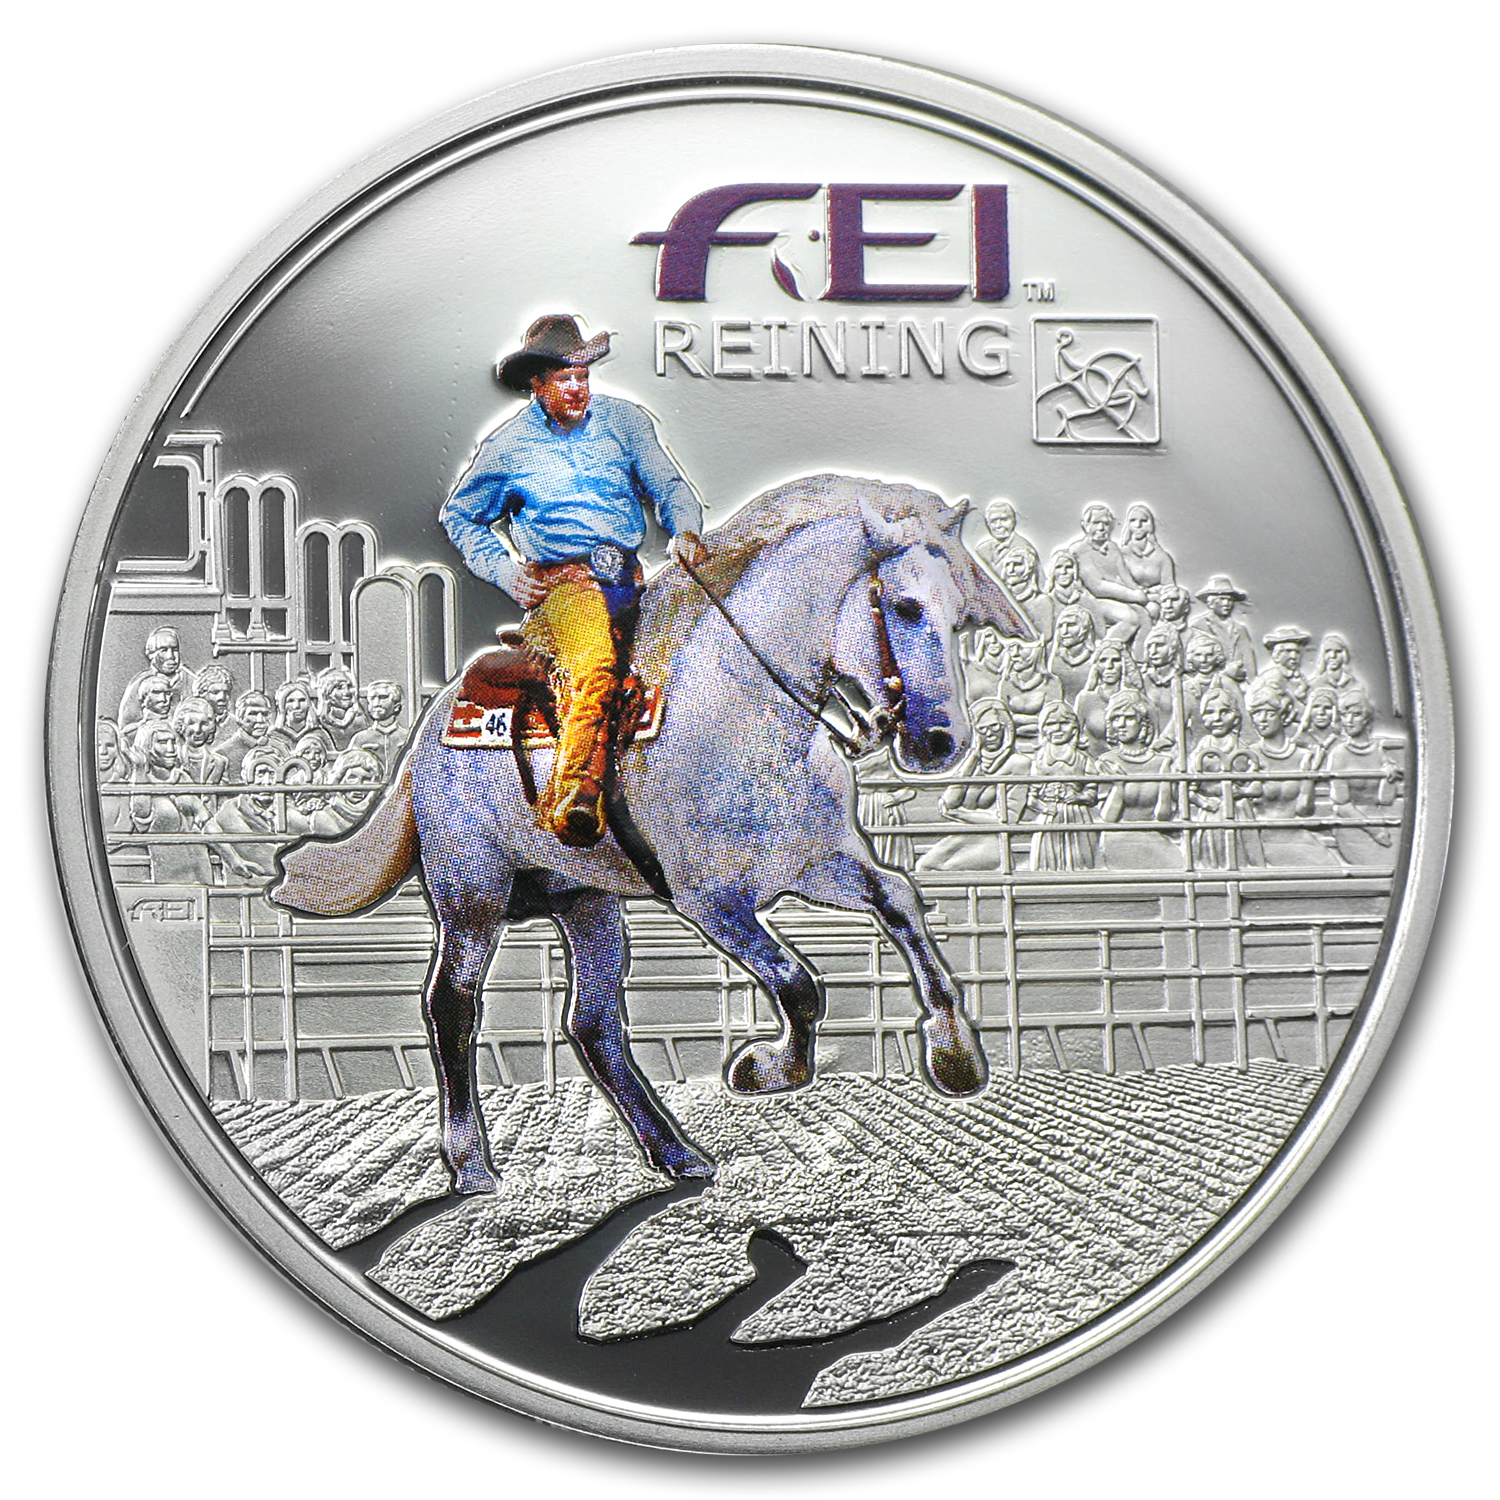 2013 Andorra Silver Fédération Equestre Internationale Reining